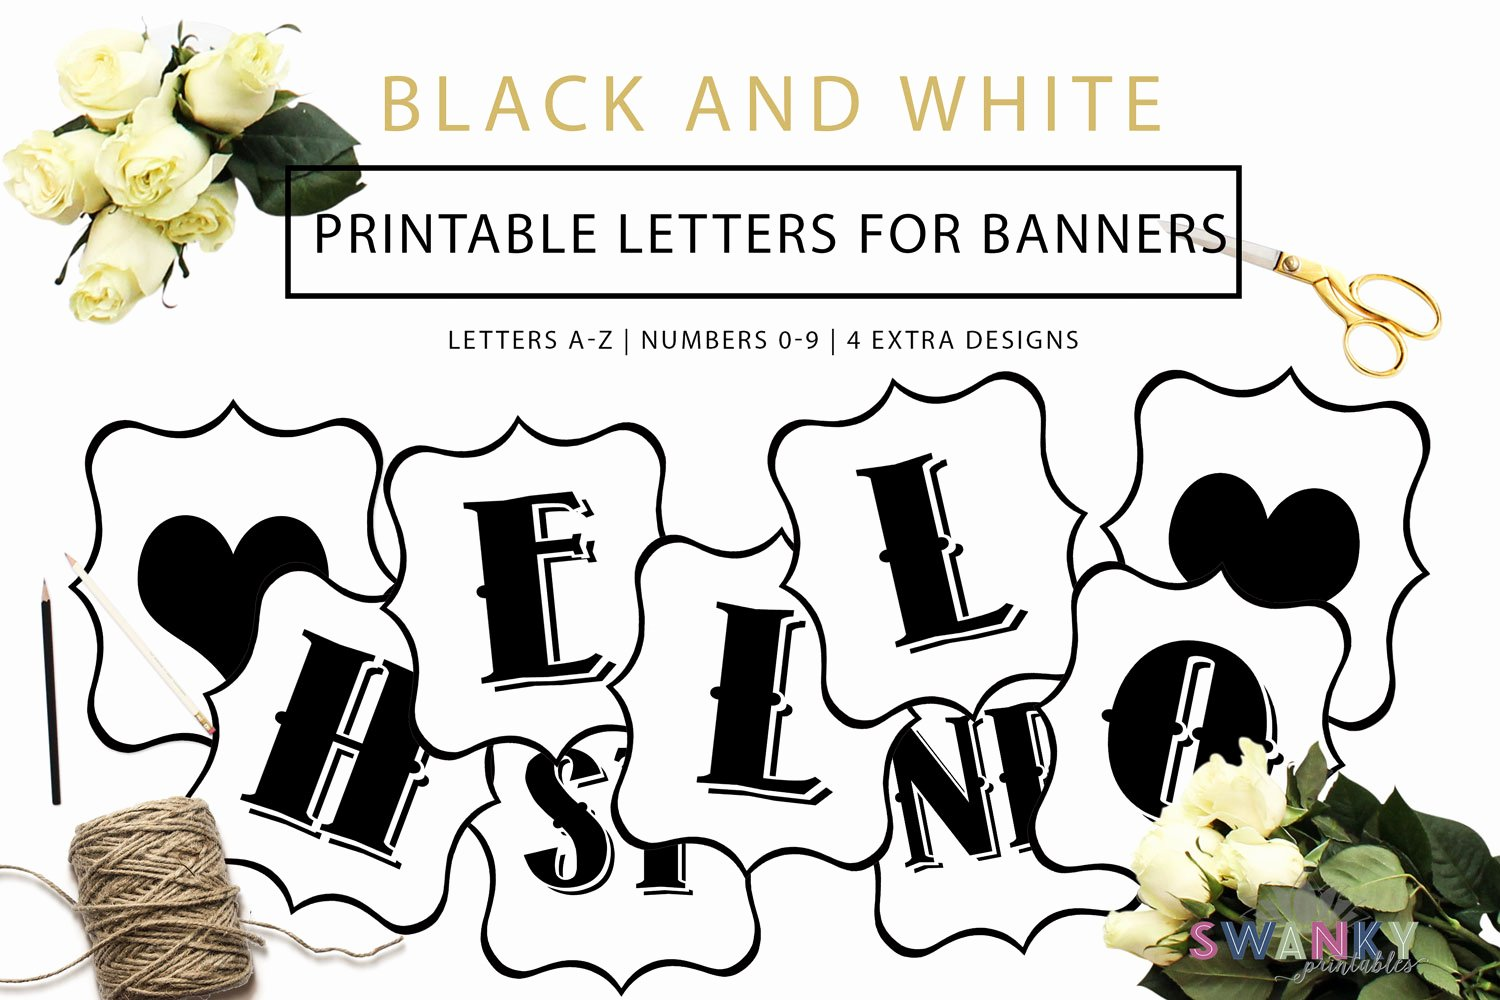 Printable Letter Banners Lovely Free Printable Black and White Banner Letters